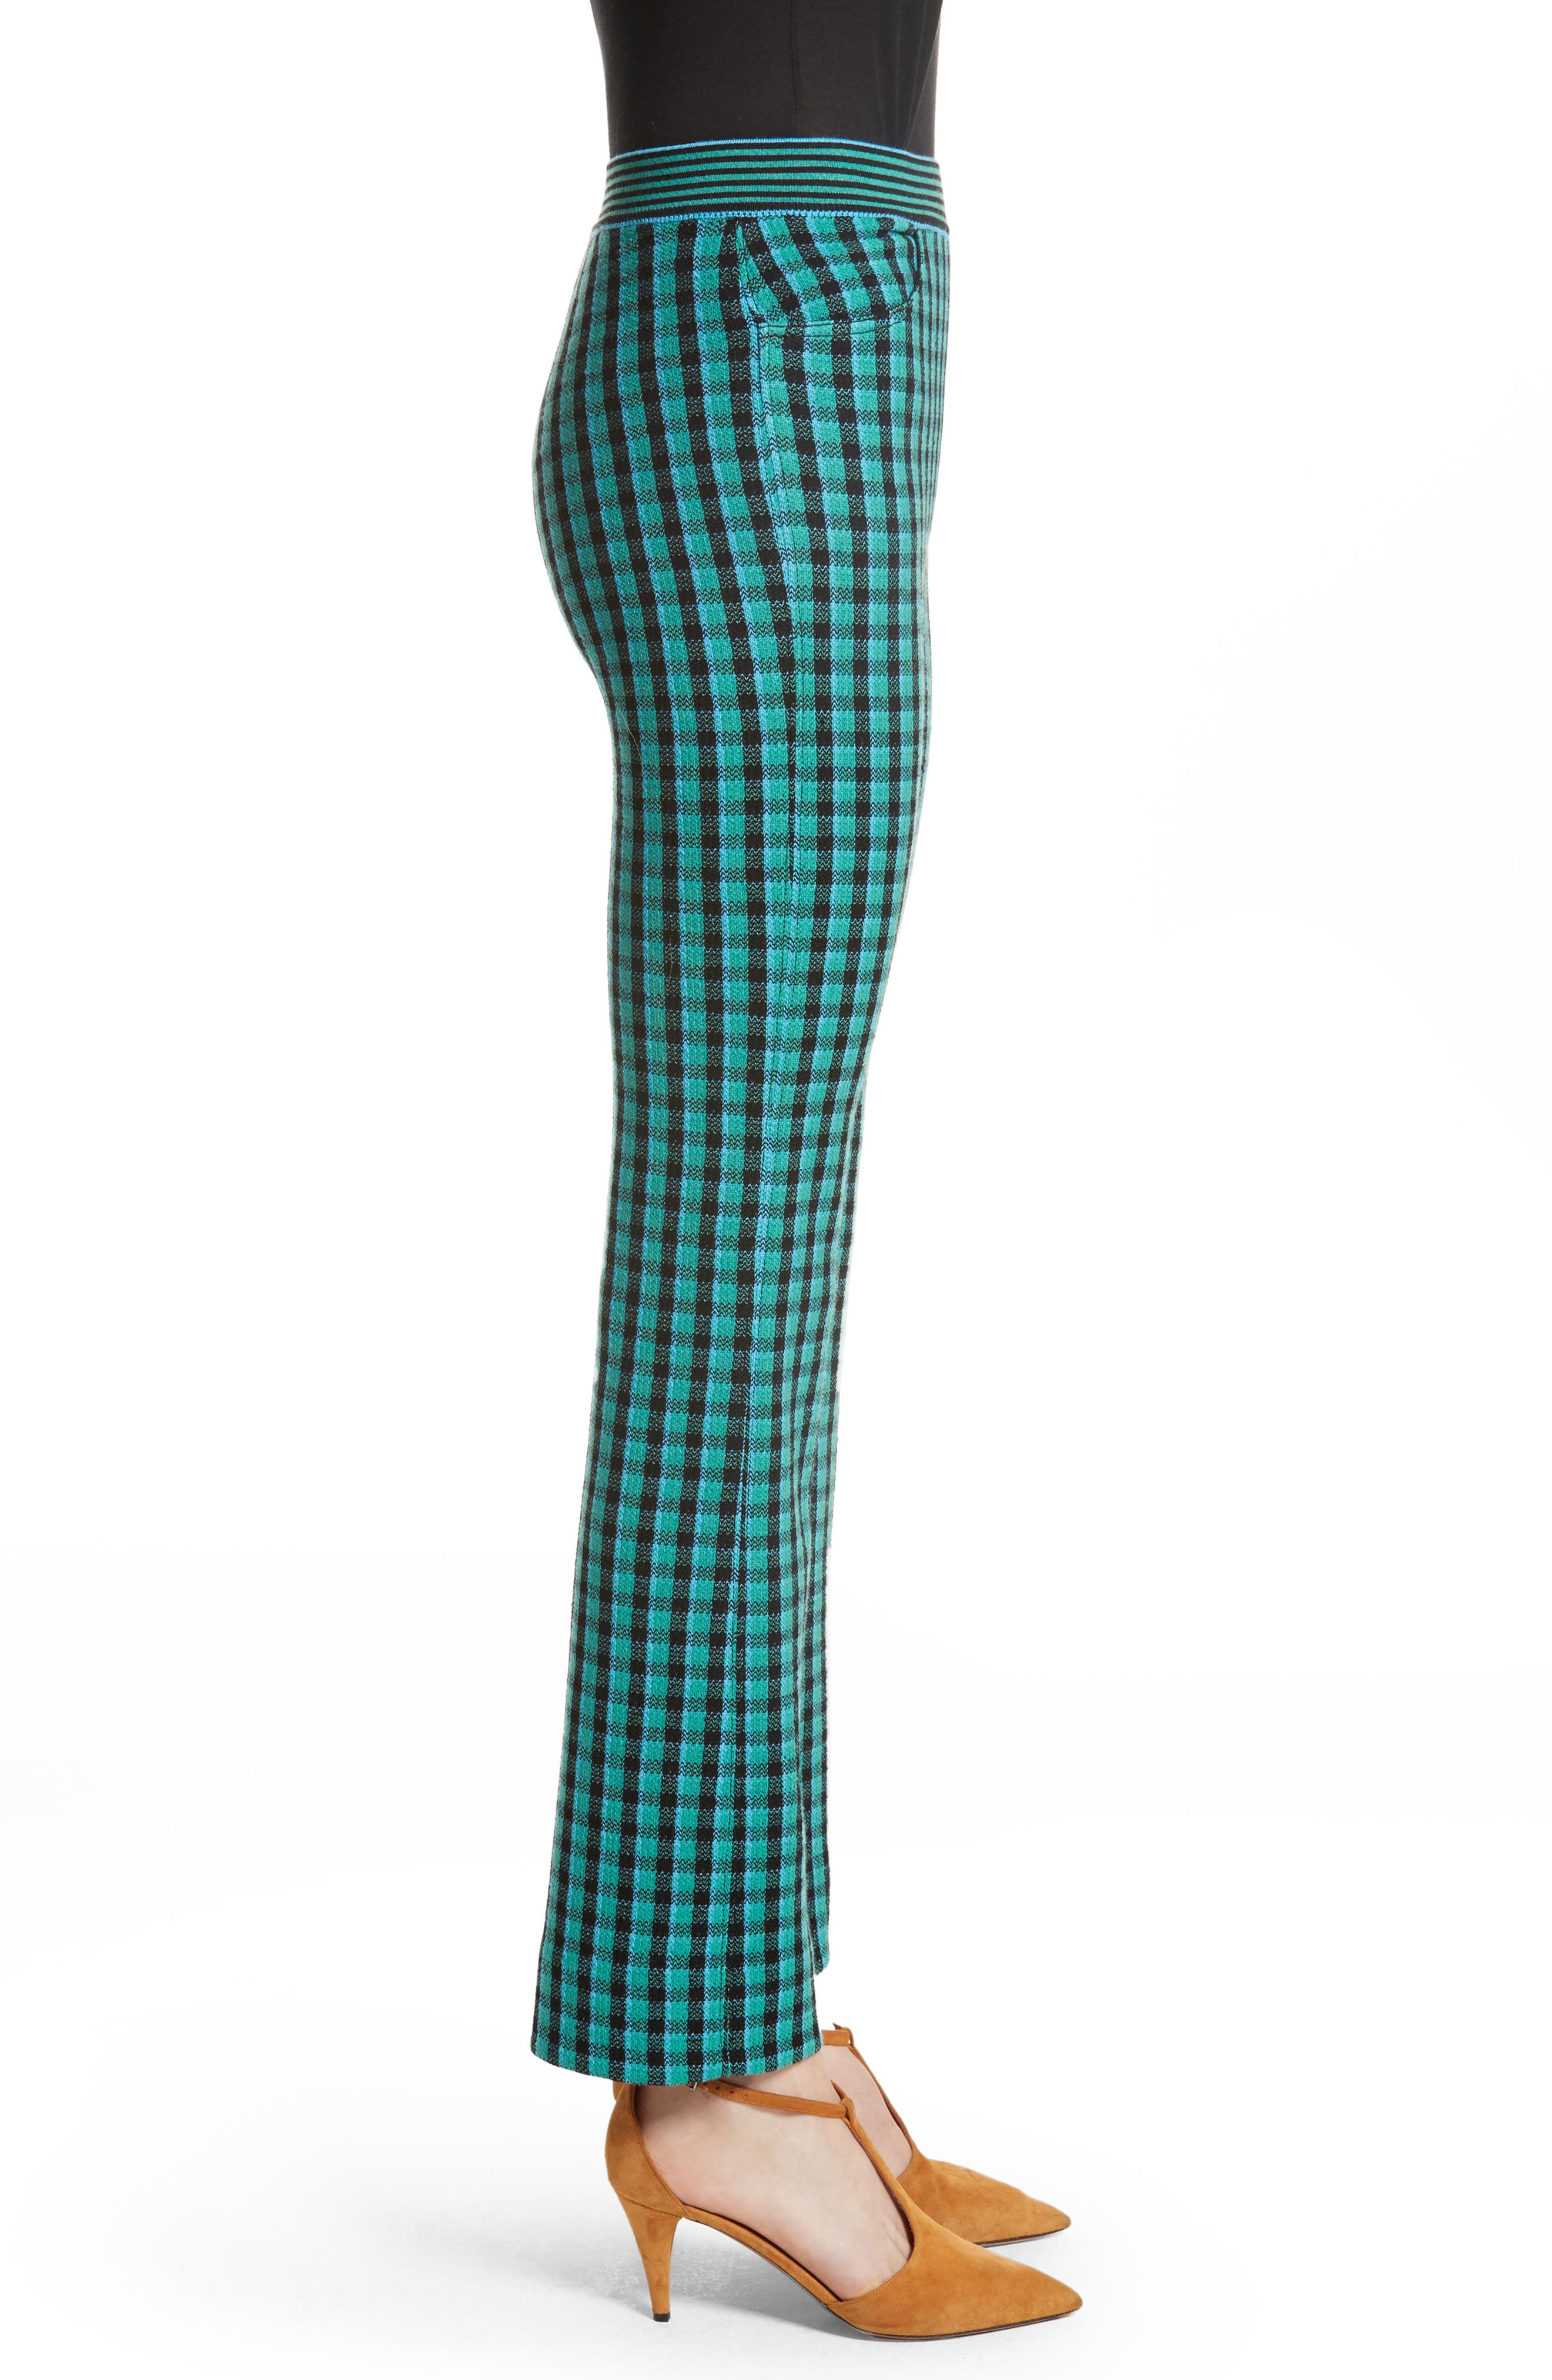 Plaid Stretch Wool Knit Pants,                             Alternate thumbnail 5, color,                             Green/ Blue